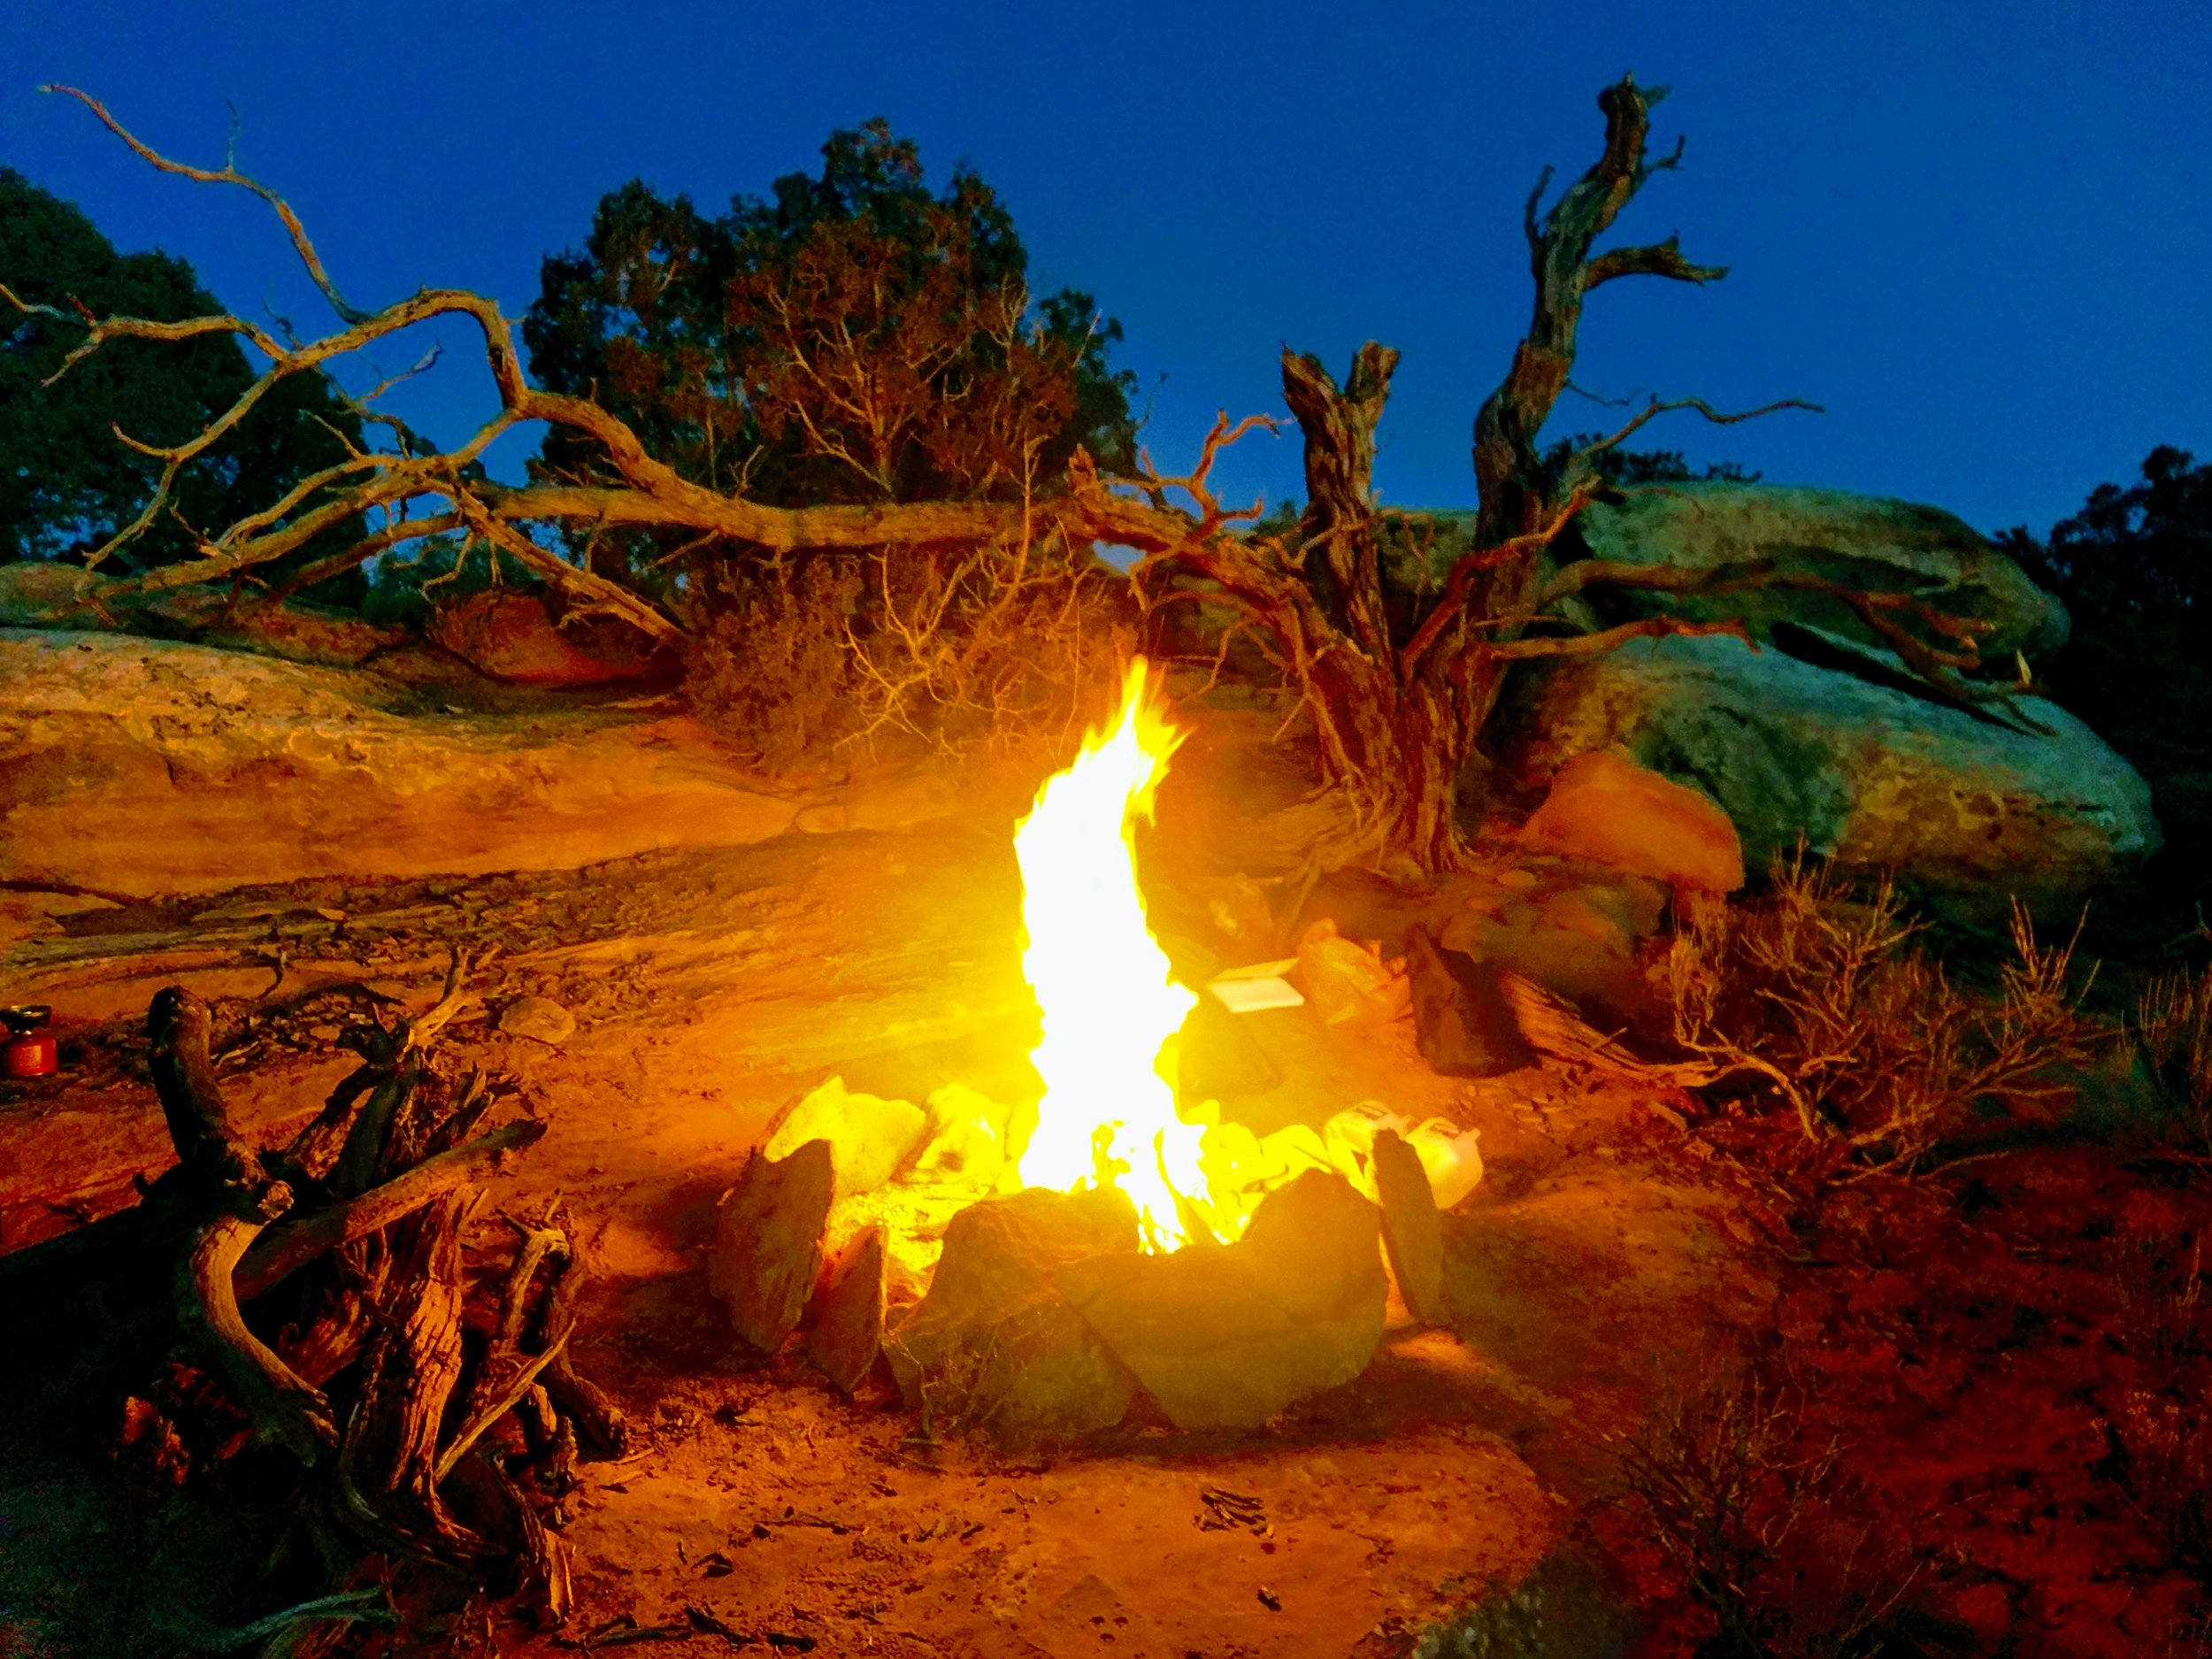 You are invited to take your seat at the sacred fire - THERE IS A MAGICAL TRANSFORMATION THAT TAKES PLACE WHEN SEATED AROUND A CAMPFIRE, FACES A GLOW WITH GOLDEN LIGHT. tHE MASK CAN FALL AWAY allowing thE TRUTH OF WHO YOU ARE TO BE SEEN, HEarD, EXPERIENCED.